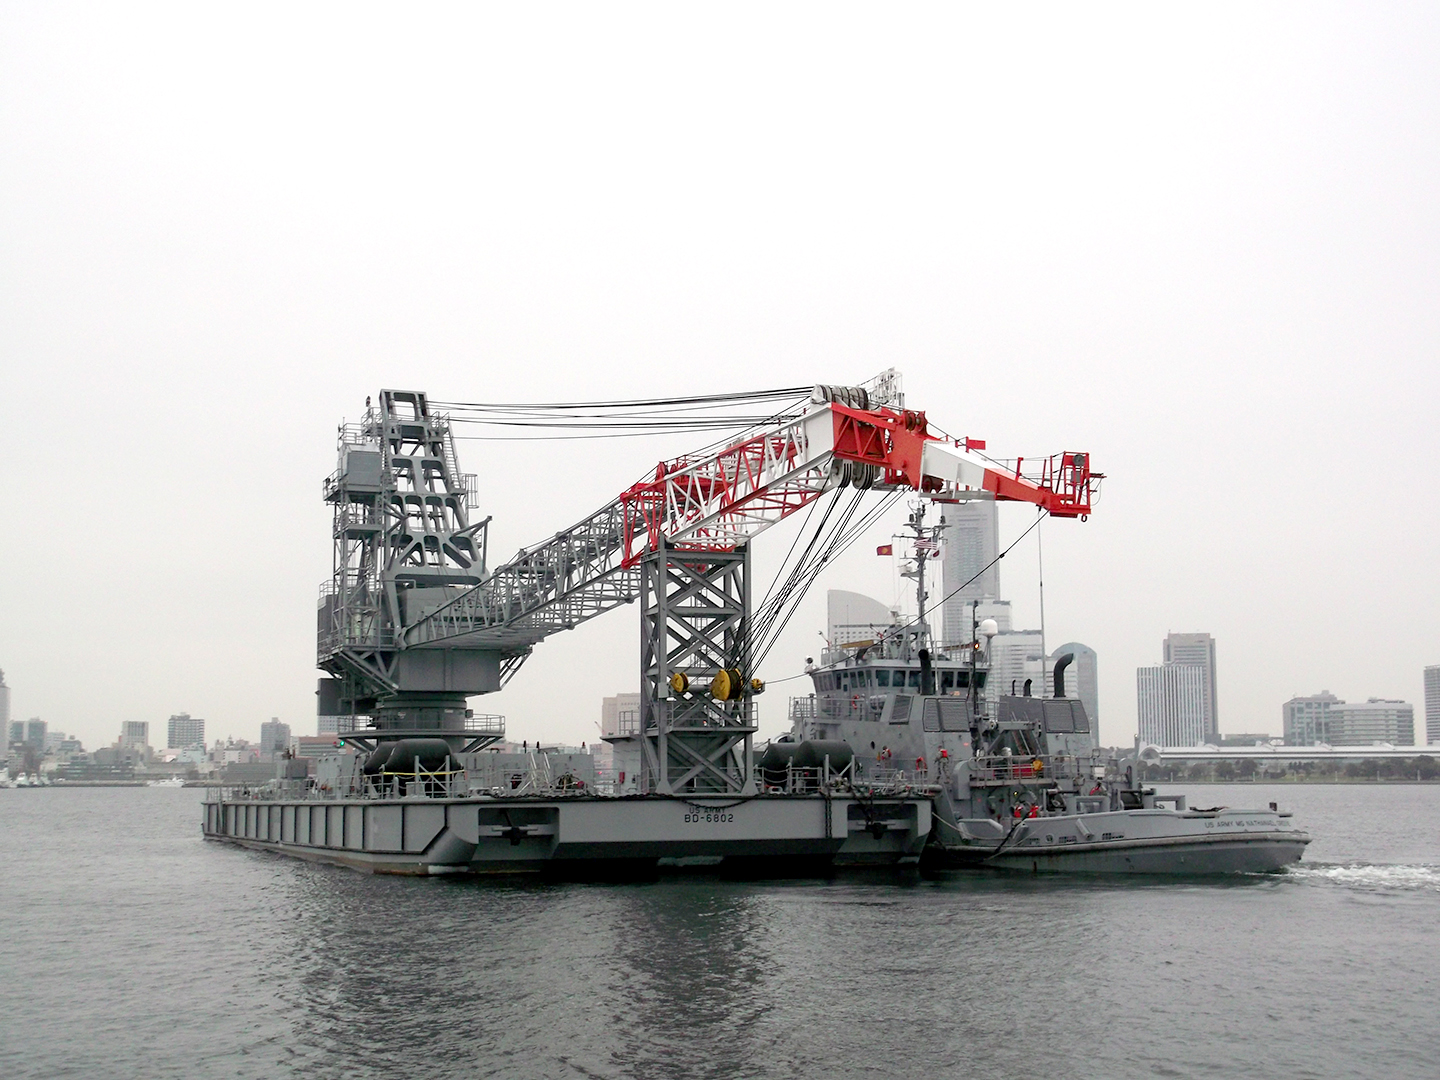 U.S. Army Vessel Port Hudson departs Yokohama en route to Okinawa as part of Pacific Utility and Logistics Support Enabler – Watercraft.